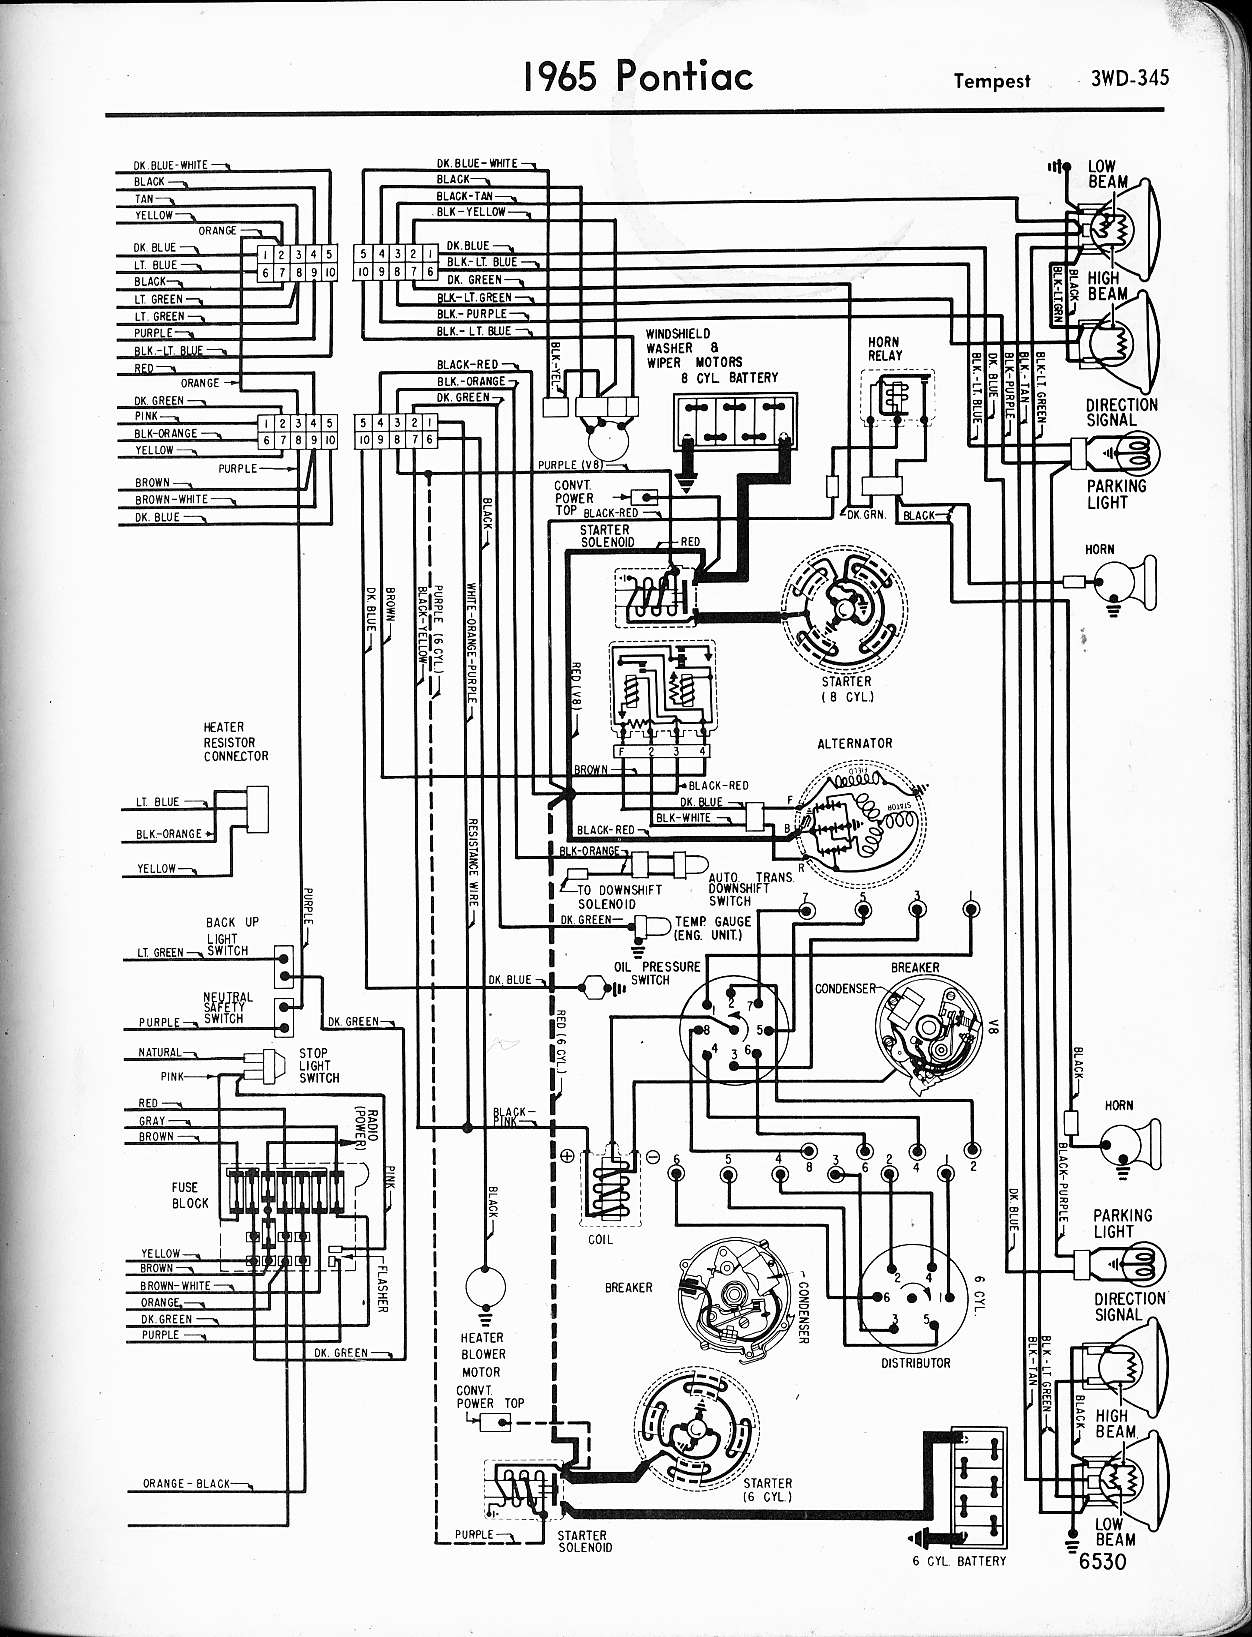 MWire5765 345 69 camaro wiring diagram 69 camaro dash wiring diagram \u2022 free 1966 GTO Engine at mifinder.co